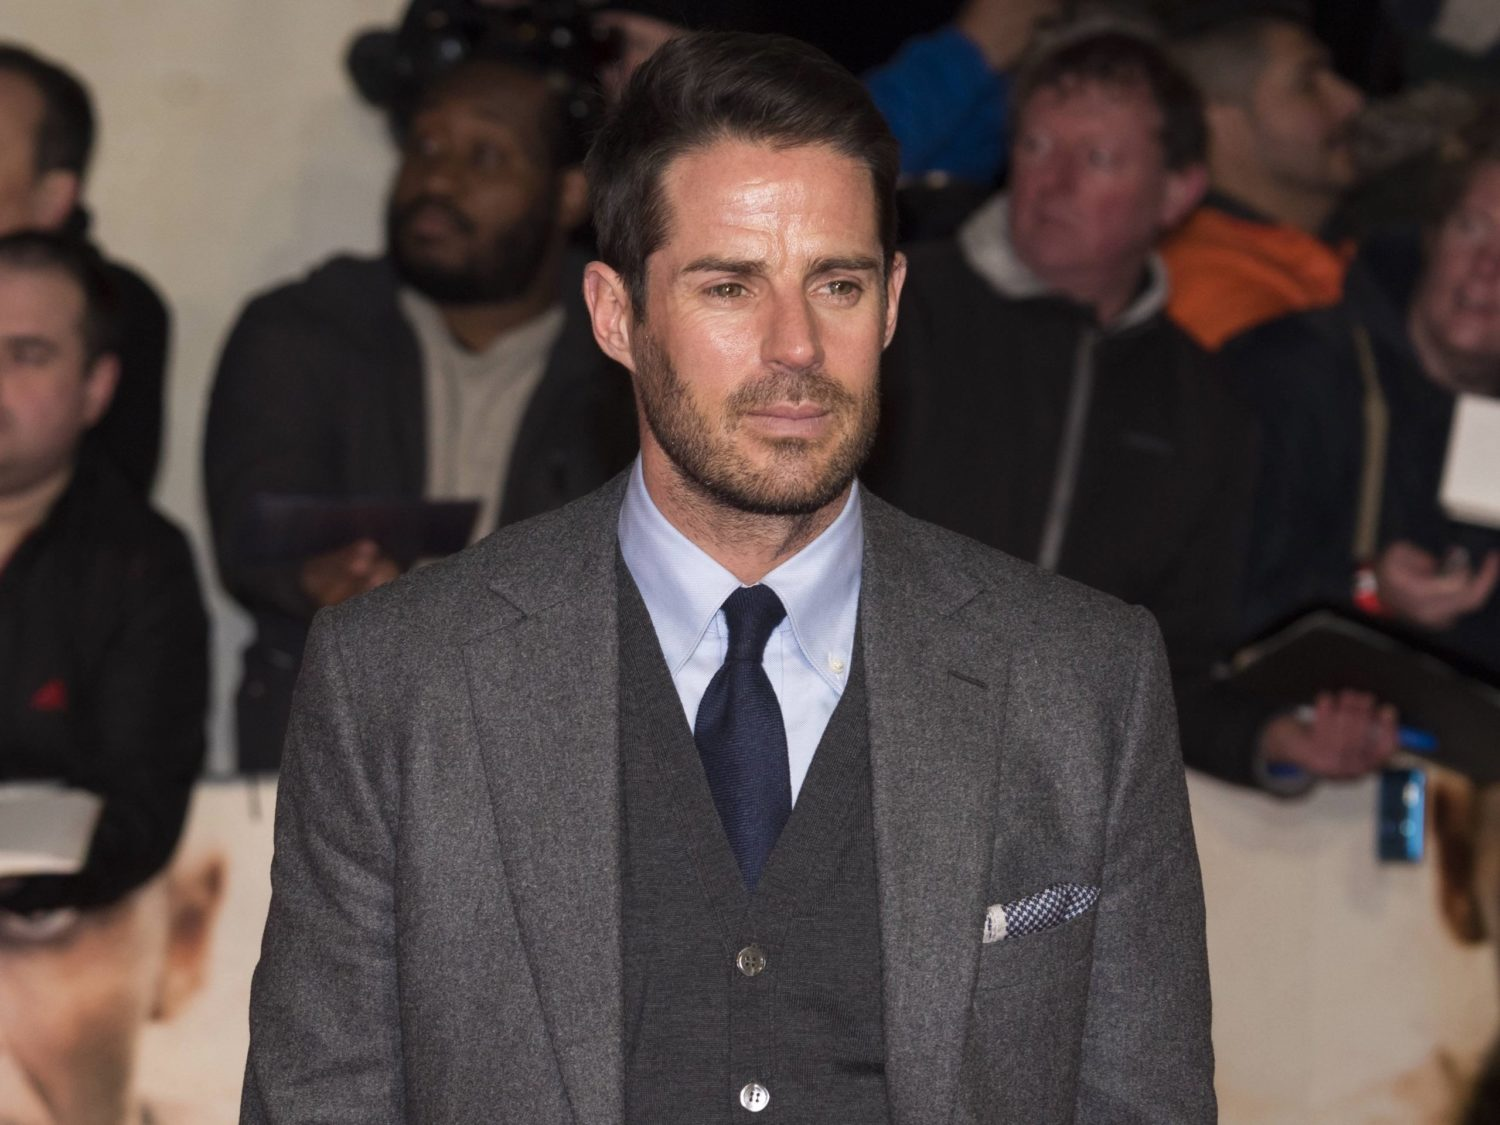 Jamie Redknapp gives fans a peek into his bachelor pad